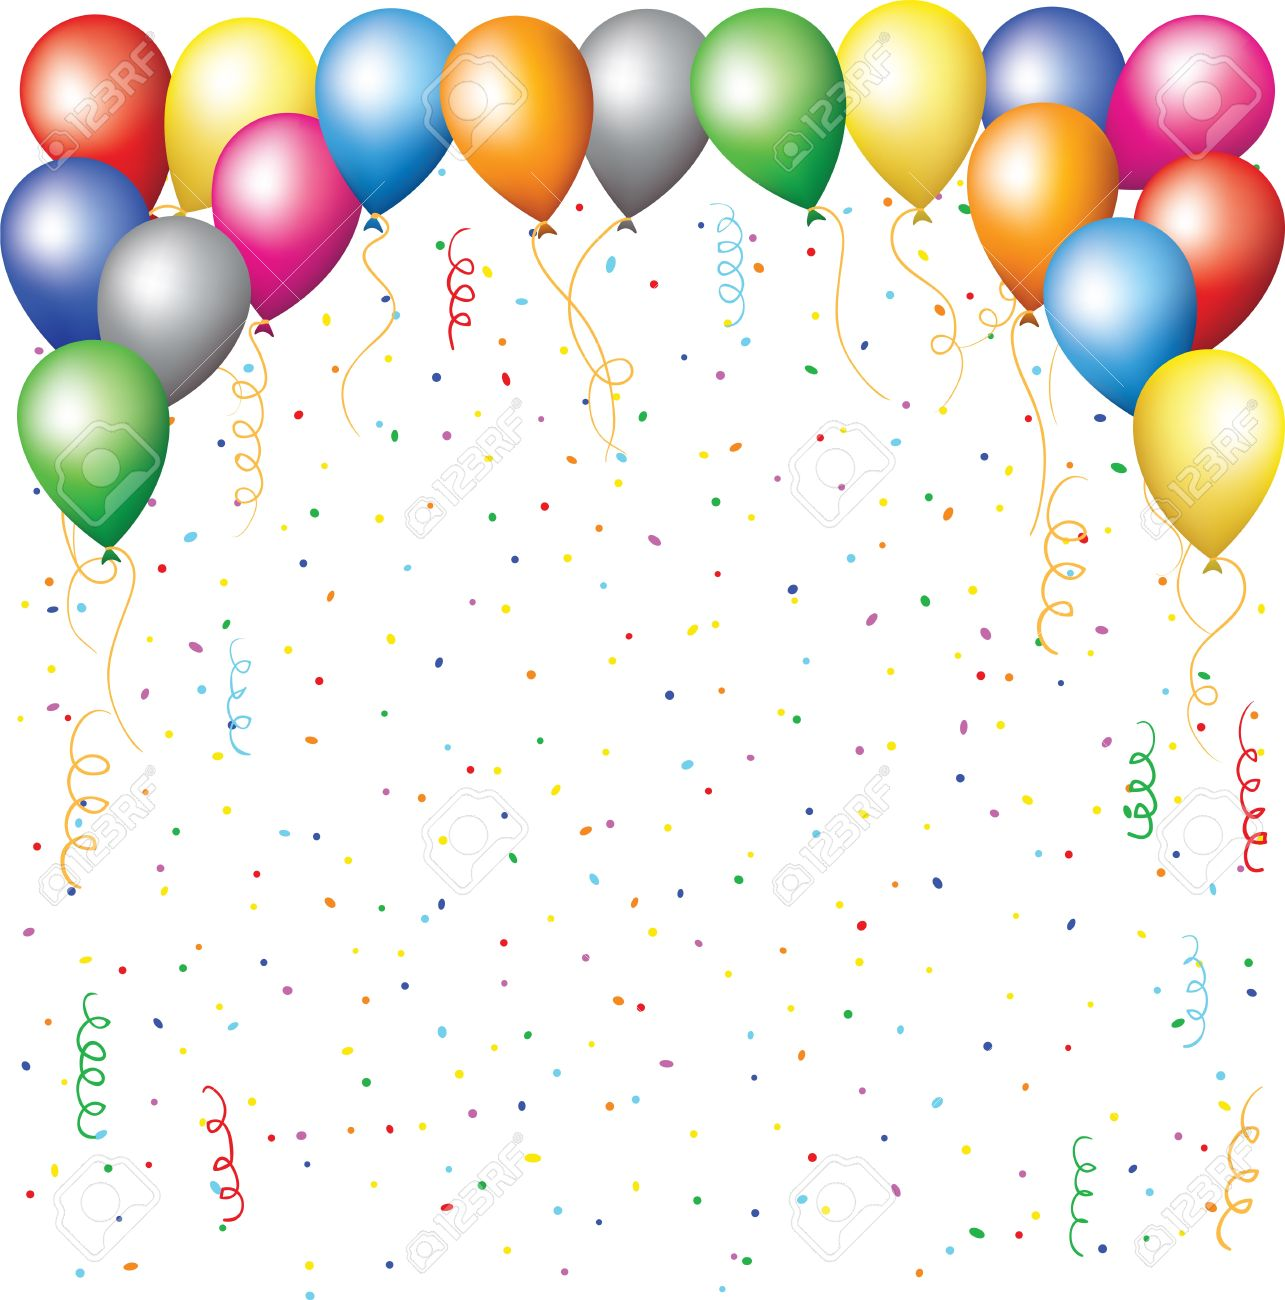 birthday background clipart ; 16355017-happy-birthday-background-with-balloons-confetti-and-serpantine